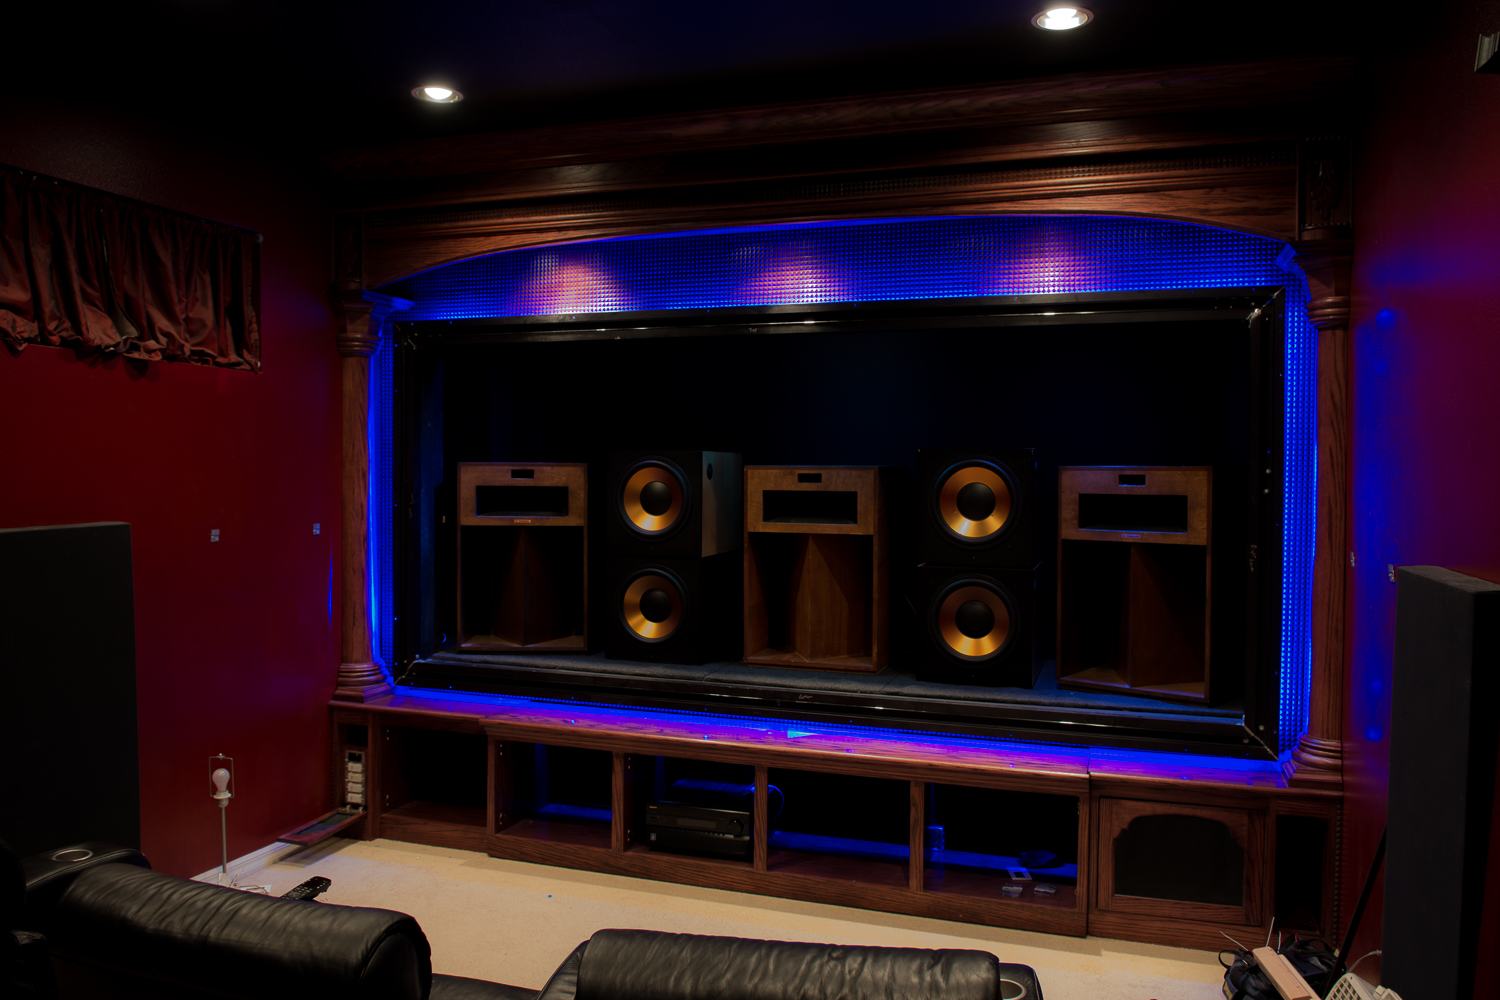 youthman 39 s home theater 2 0 build page 6 avs forum. Black Bedroom Furniture Sets. Home Design Ideas